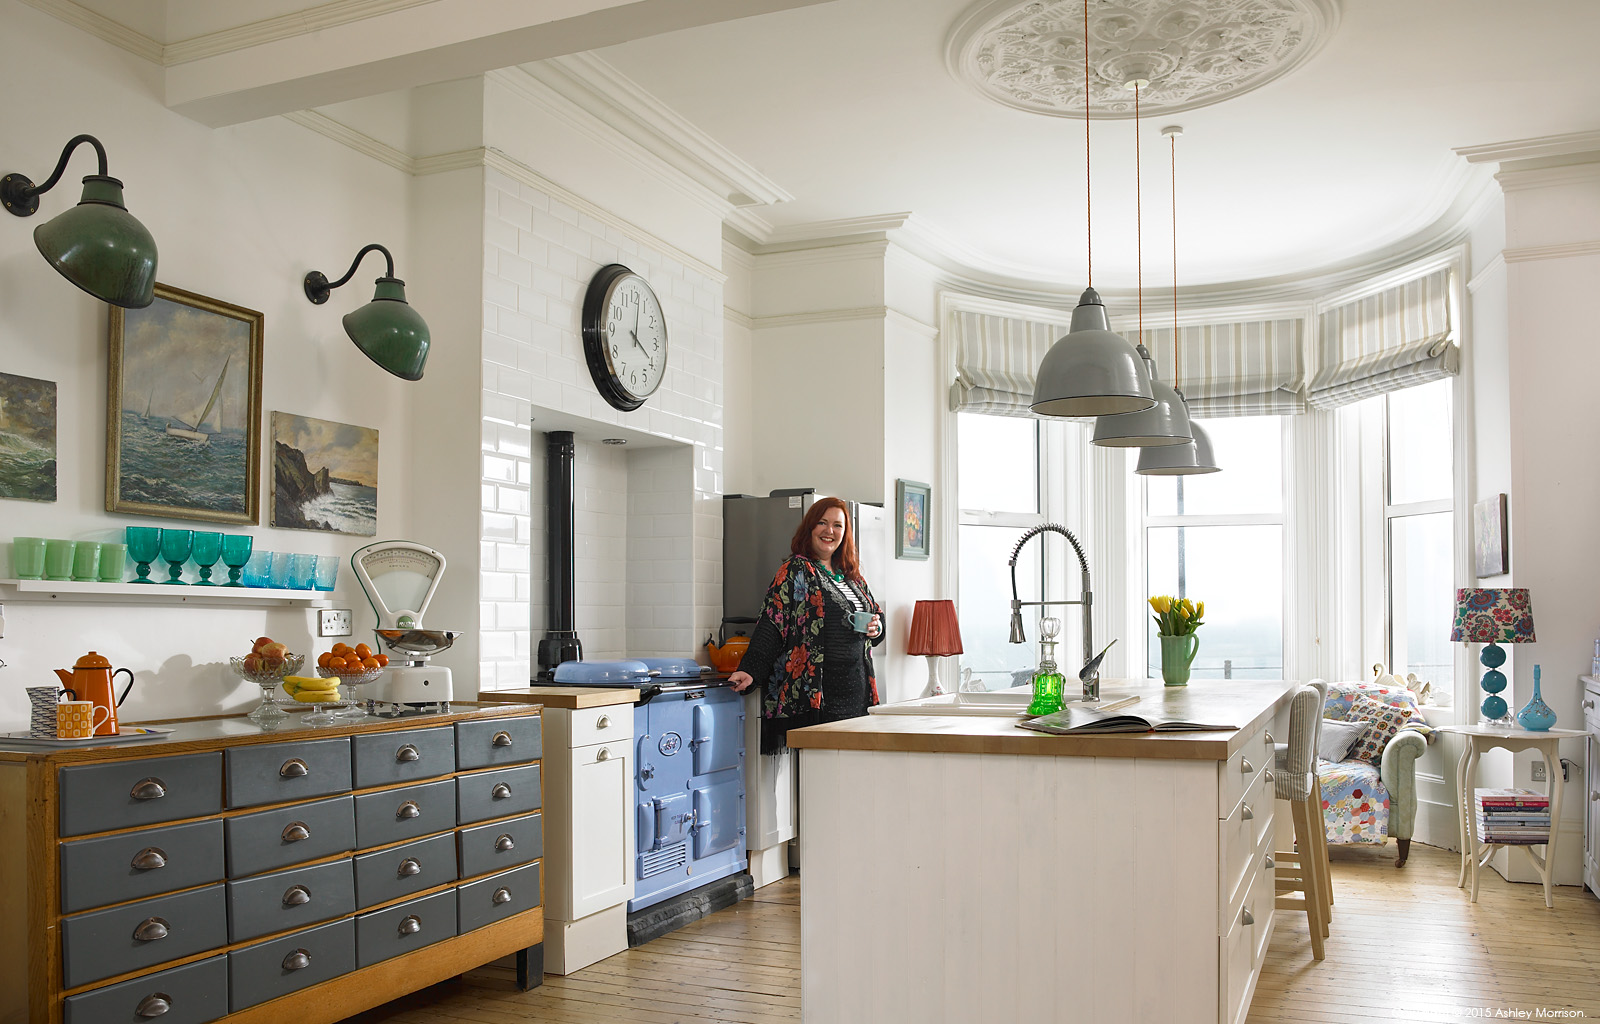 Keri Johnson in the kitchen of her townhouse which overlooks Ballyholme Bay in the County Down seaside town of Bangor.